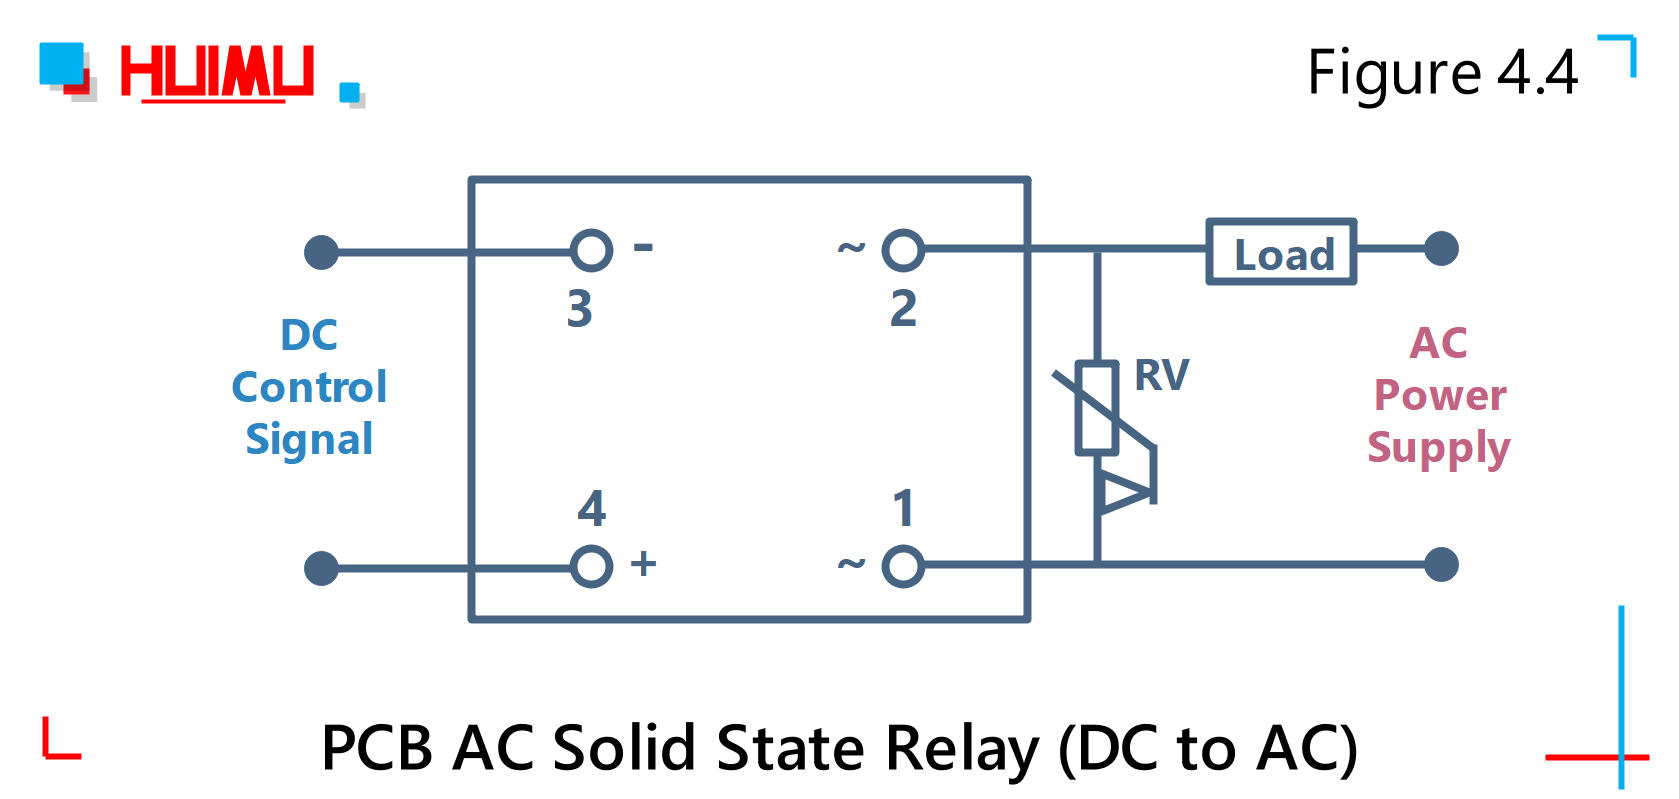 diagram] banner solid state relay q45bw22dq1 wiring diagram full version hd  quality wiring diagram - 1fenderwiring1.lalibrairiedelouviers.fr  1fenderwiring1.lalibrairiedelouviers.fr